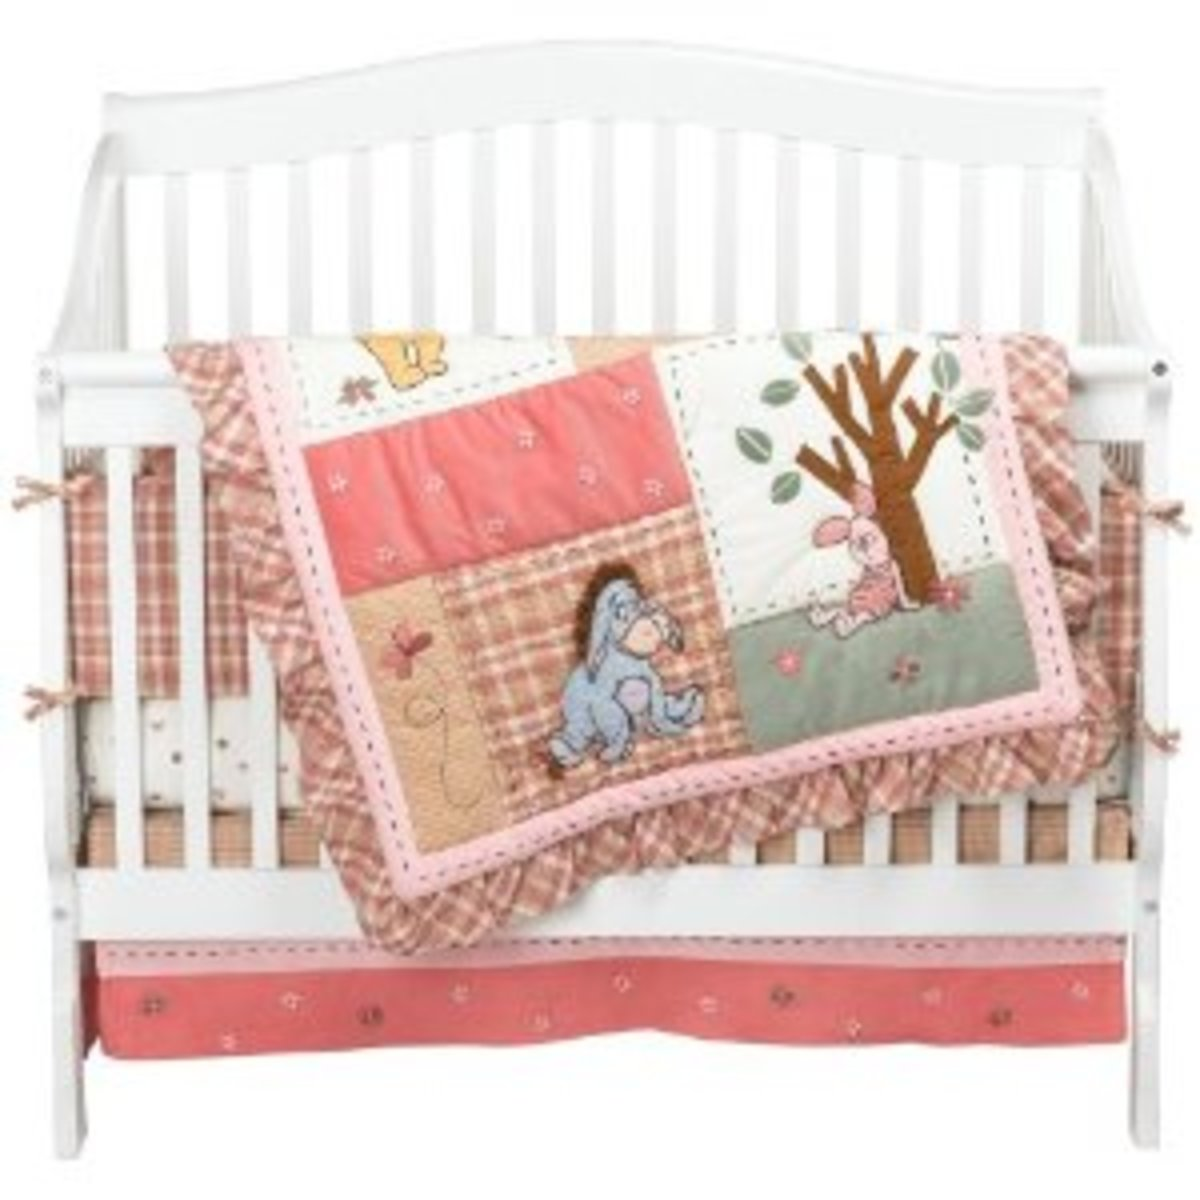 Disney Crib Bedding Set, Create A Disney Theme Baby Boy or Girl Nursery, Mickey Mouse and More